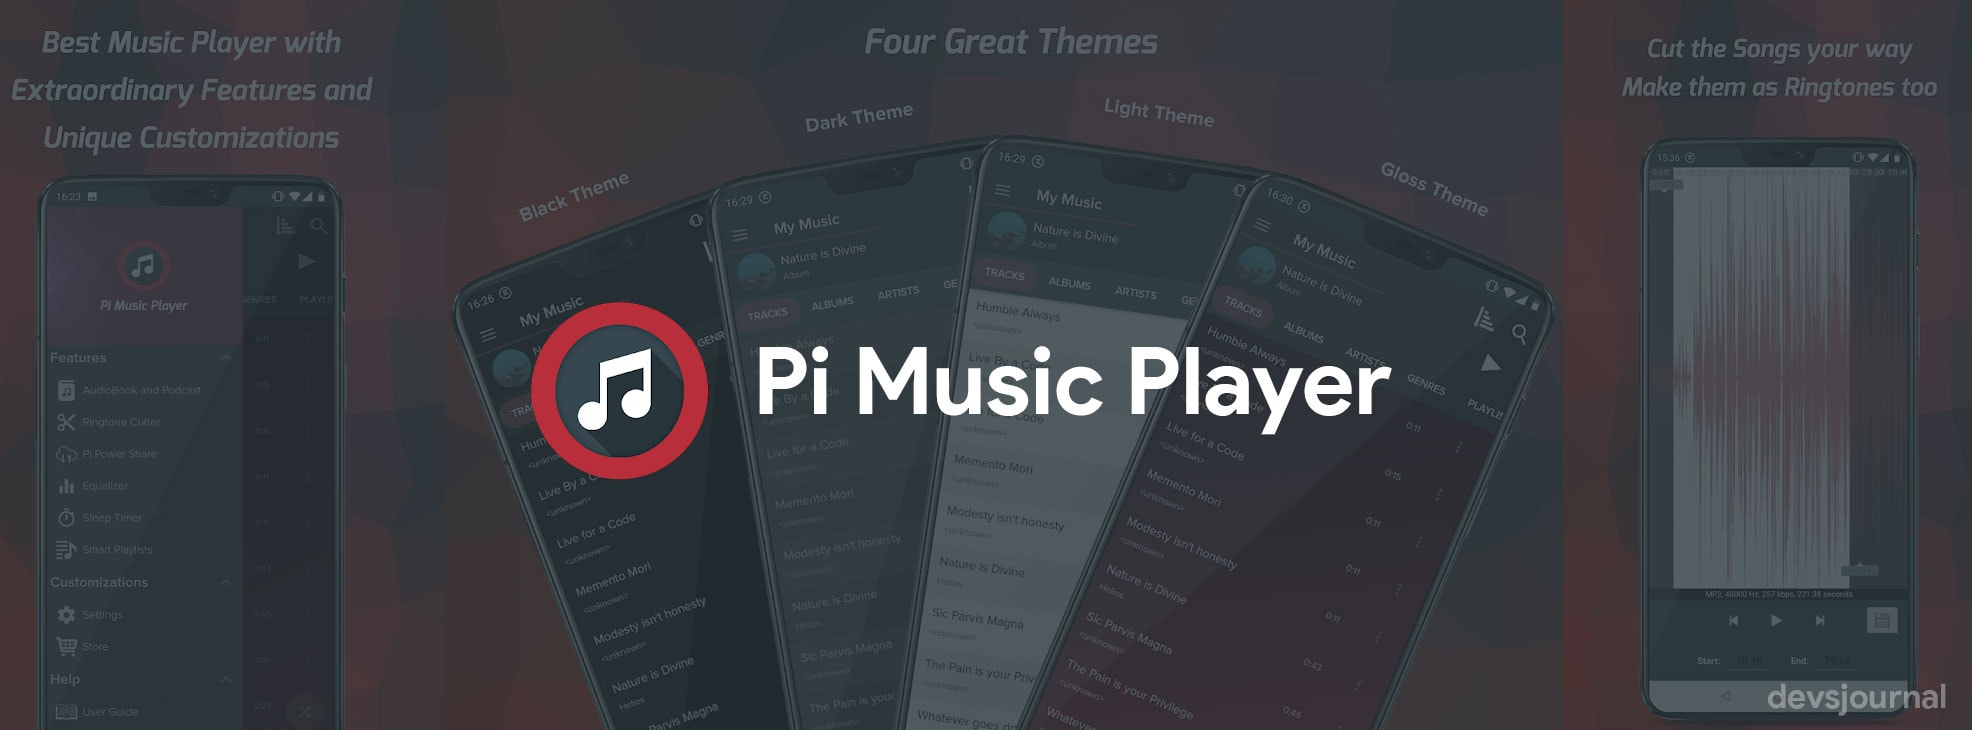 Pi Music Player Best Android Music Player with Audiobook and Podcast